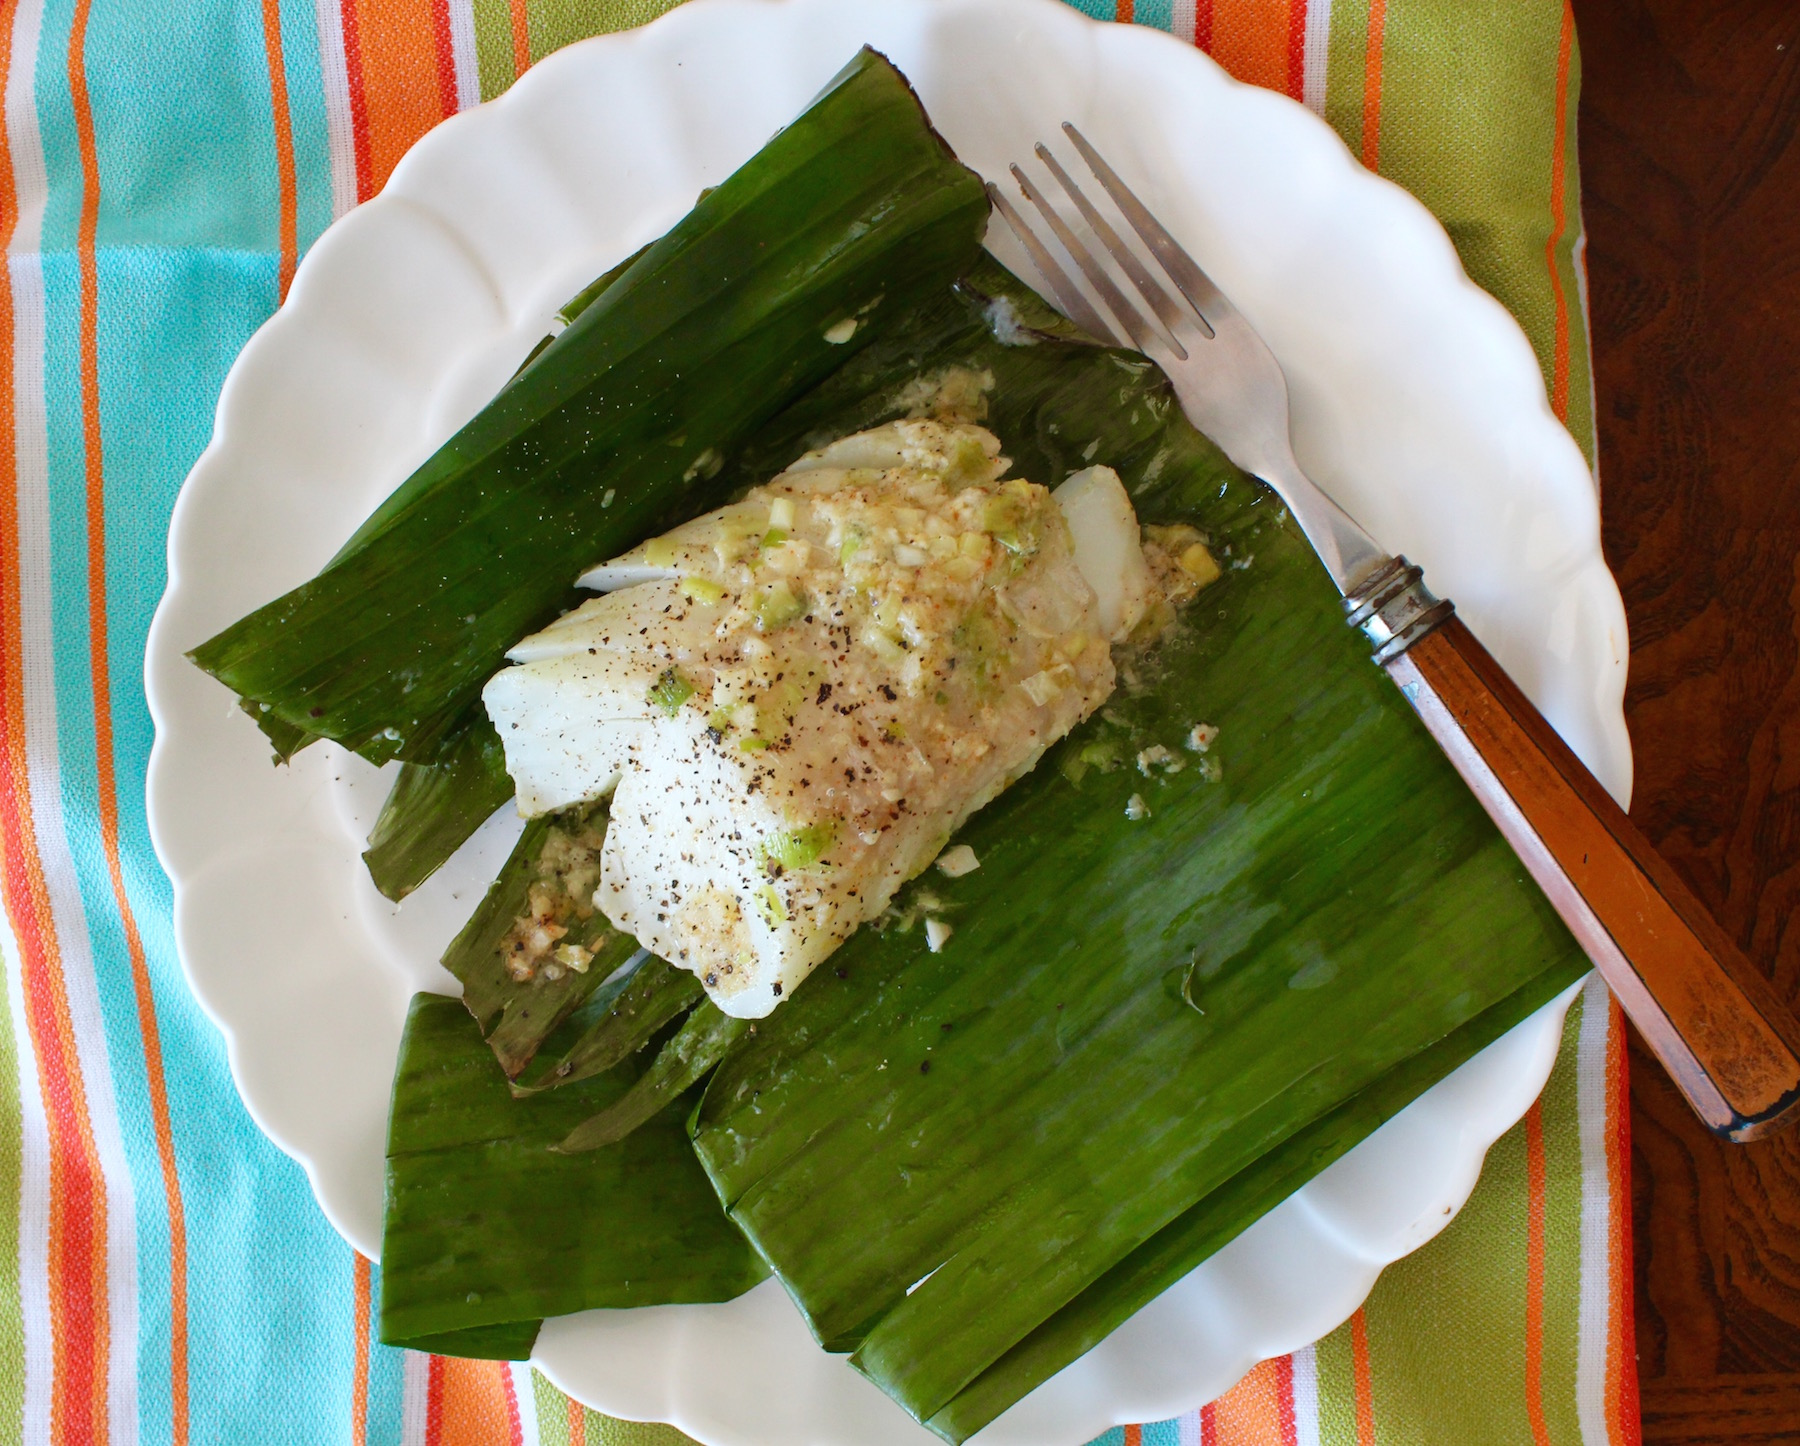 cod in banana leaves on plate